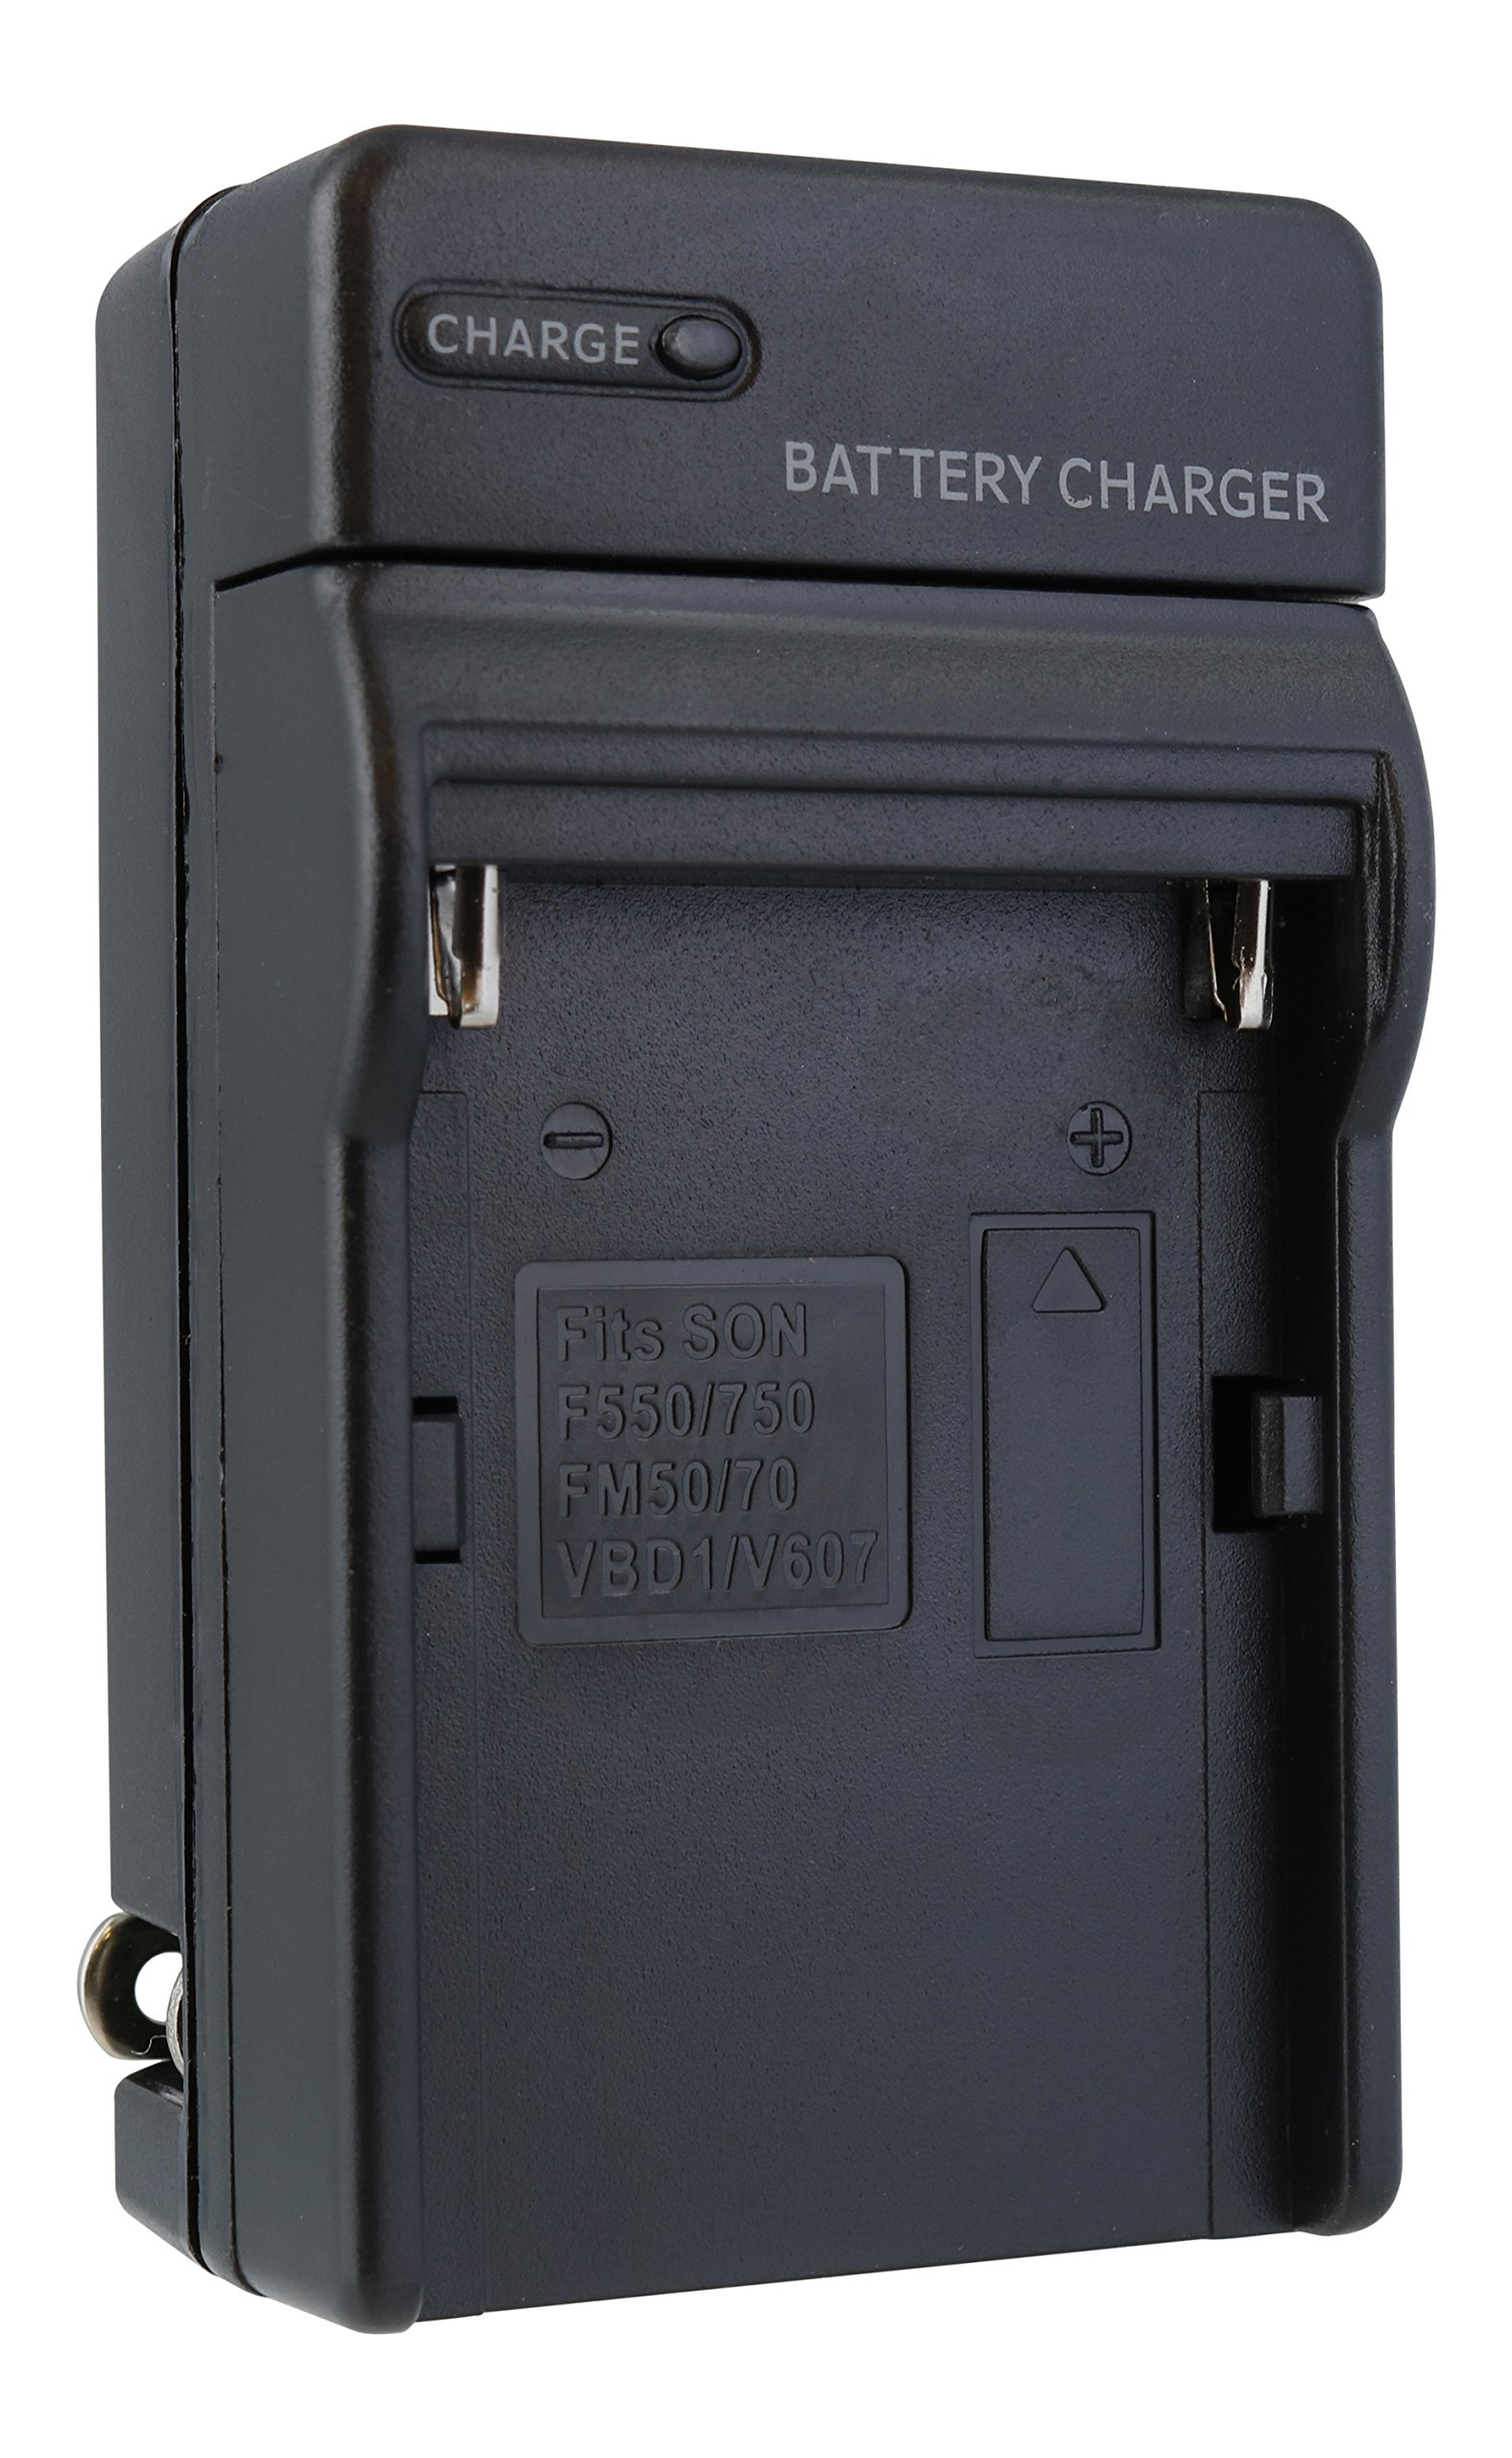 TechFuel Battery Charger Kit for Sony Cyber-shot DSC-S85 Camera - For Home, Car and Travel Use